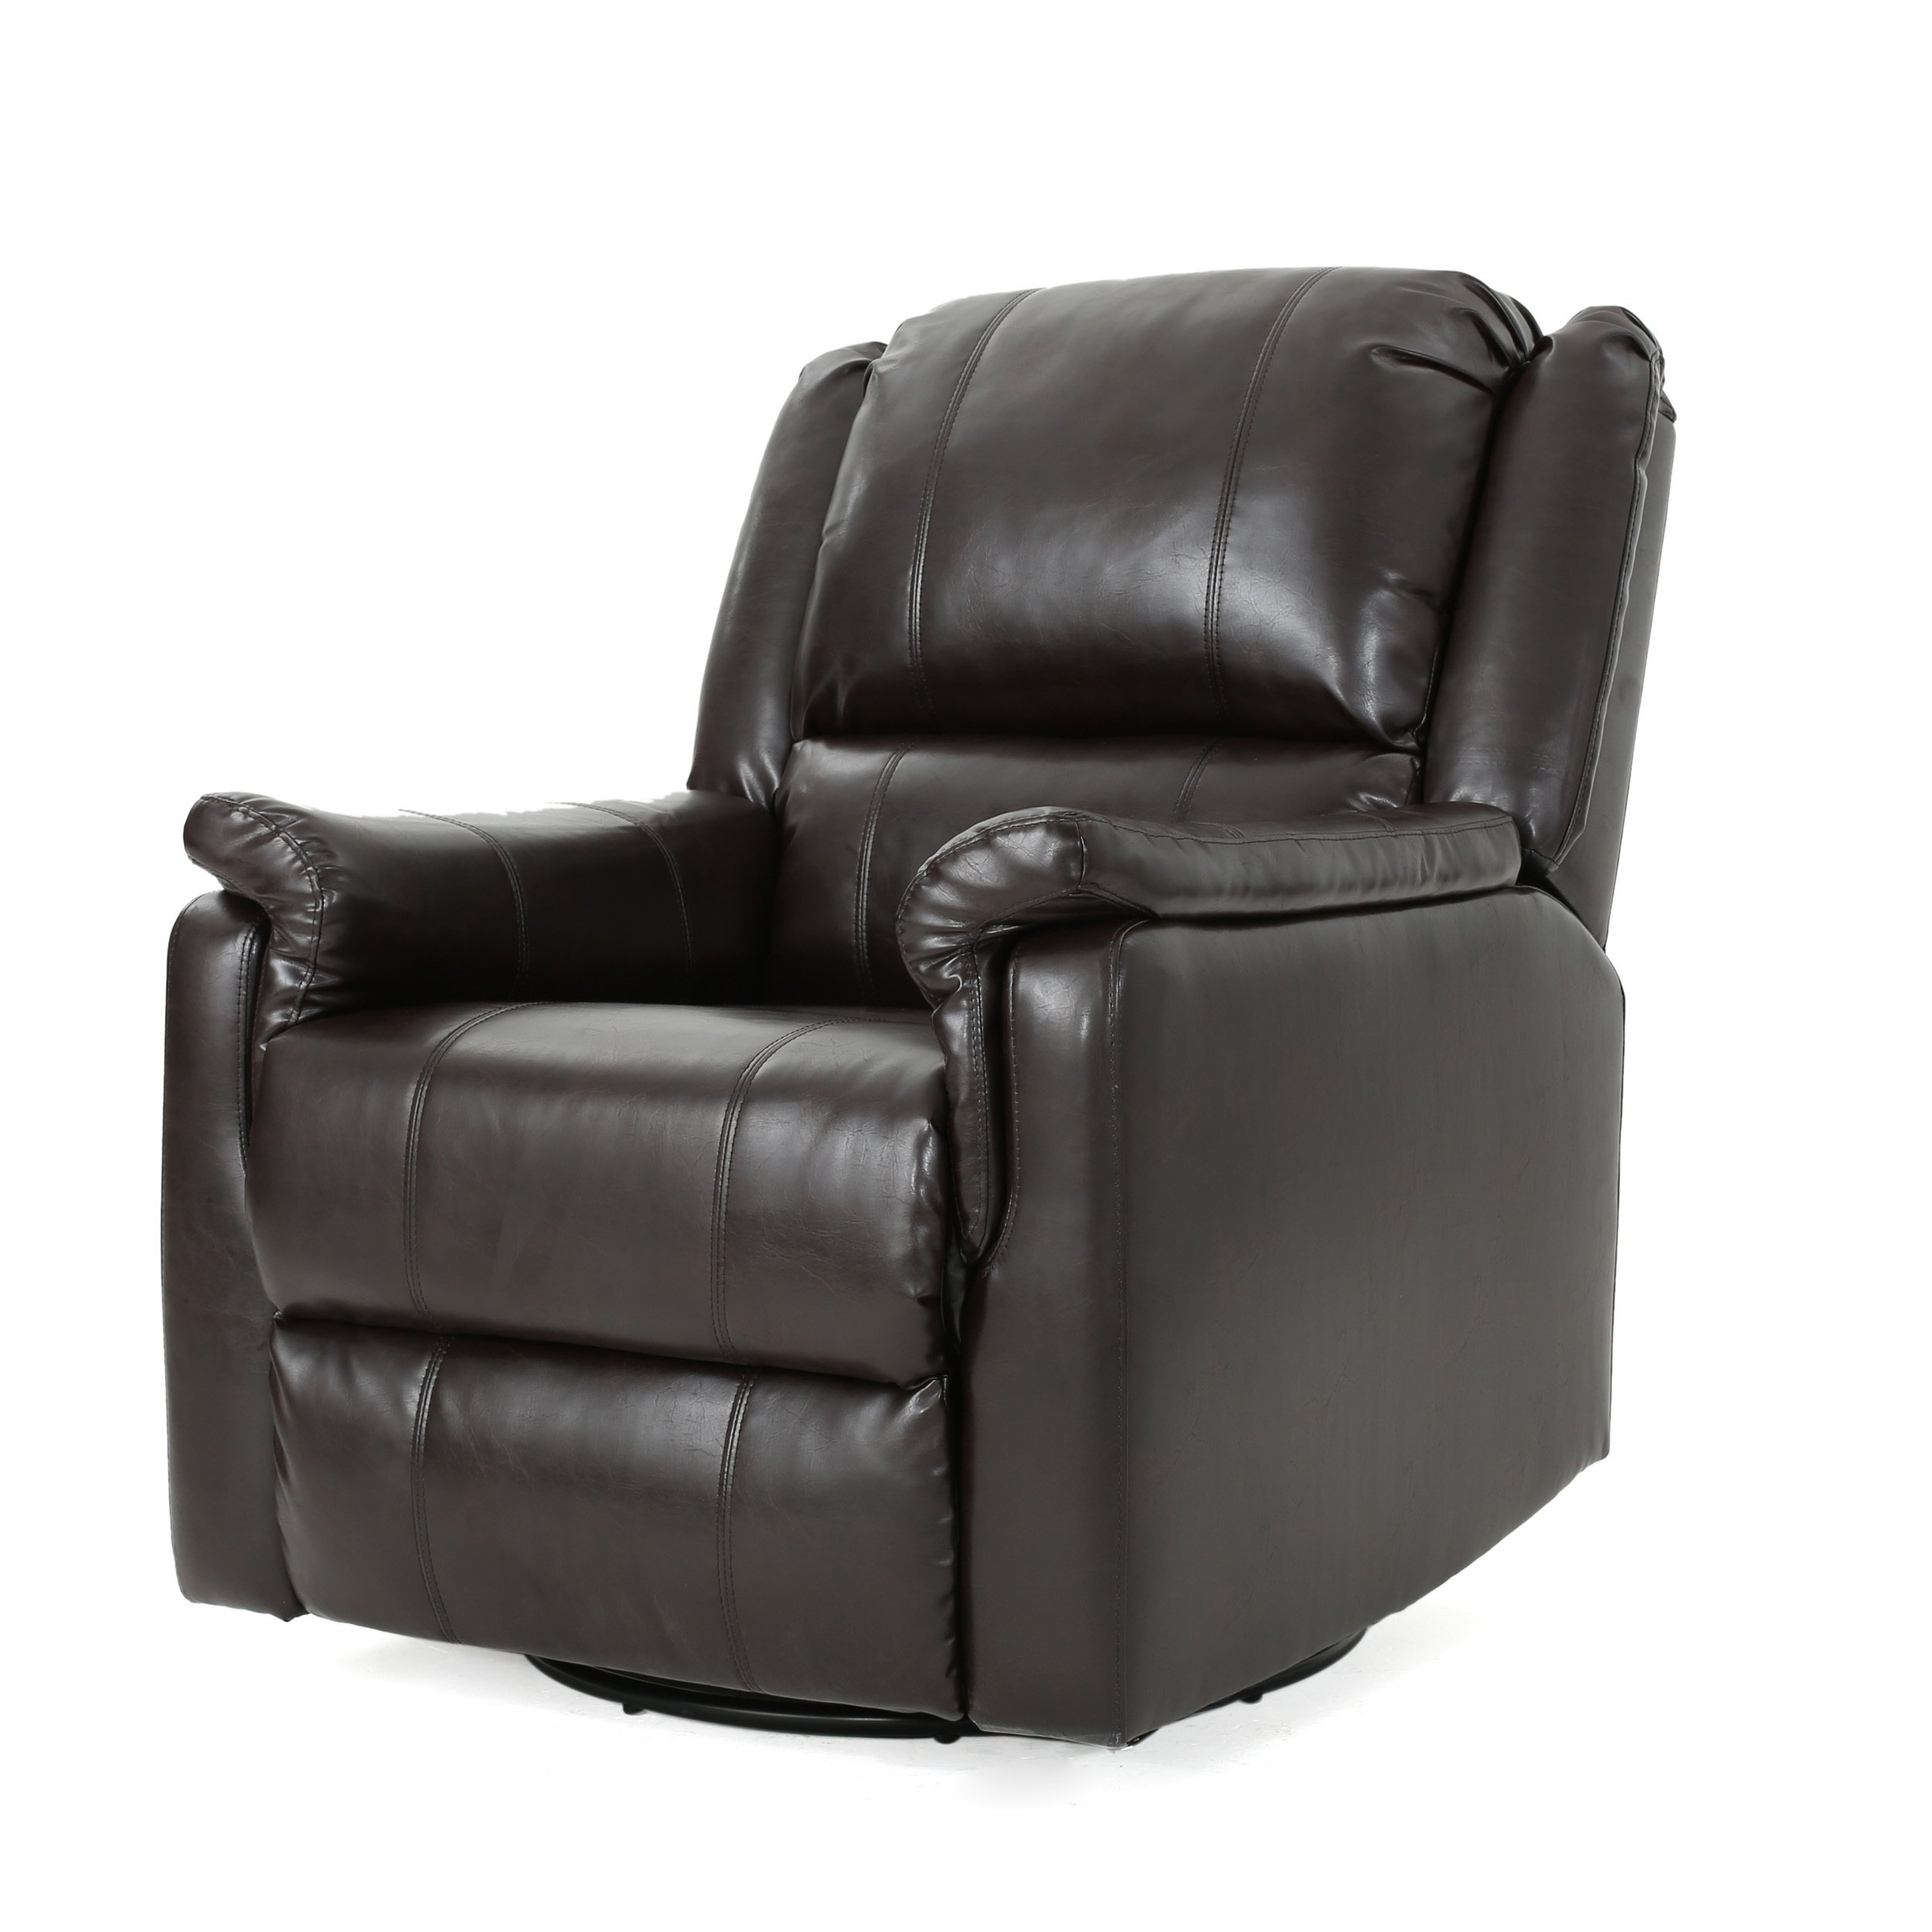 Shop Jennette Faux Leather Swivel Gliding Reclinerchristopher Regarding Franco Iii Fabric Swivel Rocker Recliners (View 14 of 20)